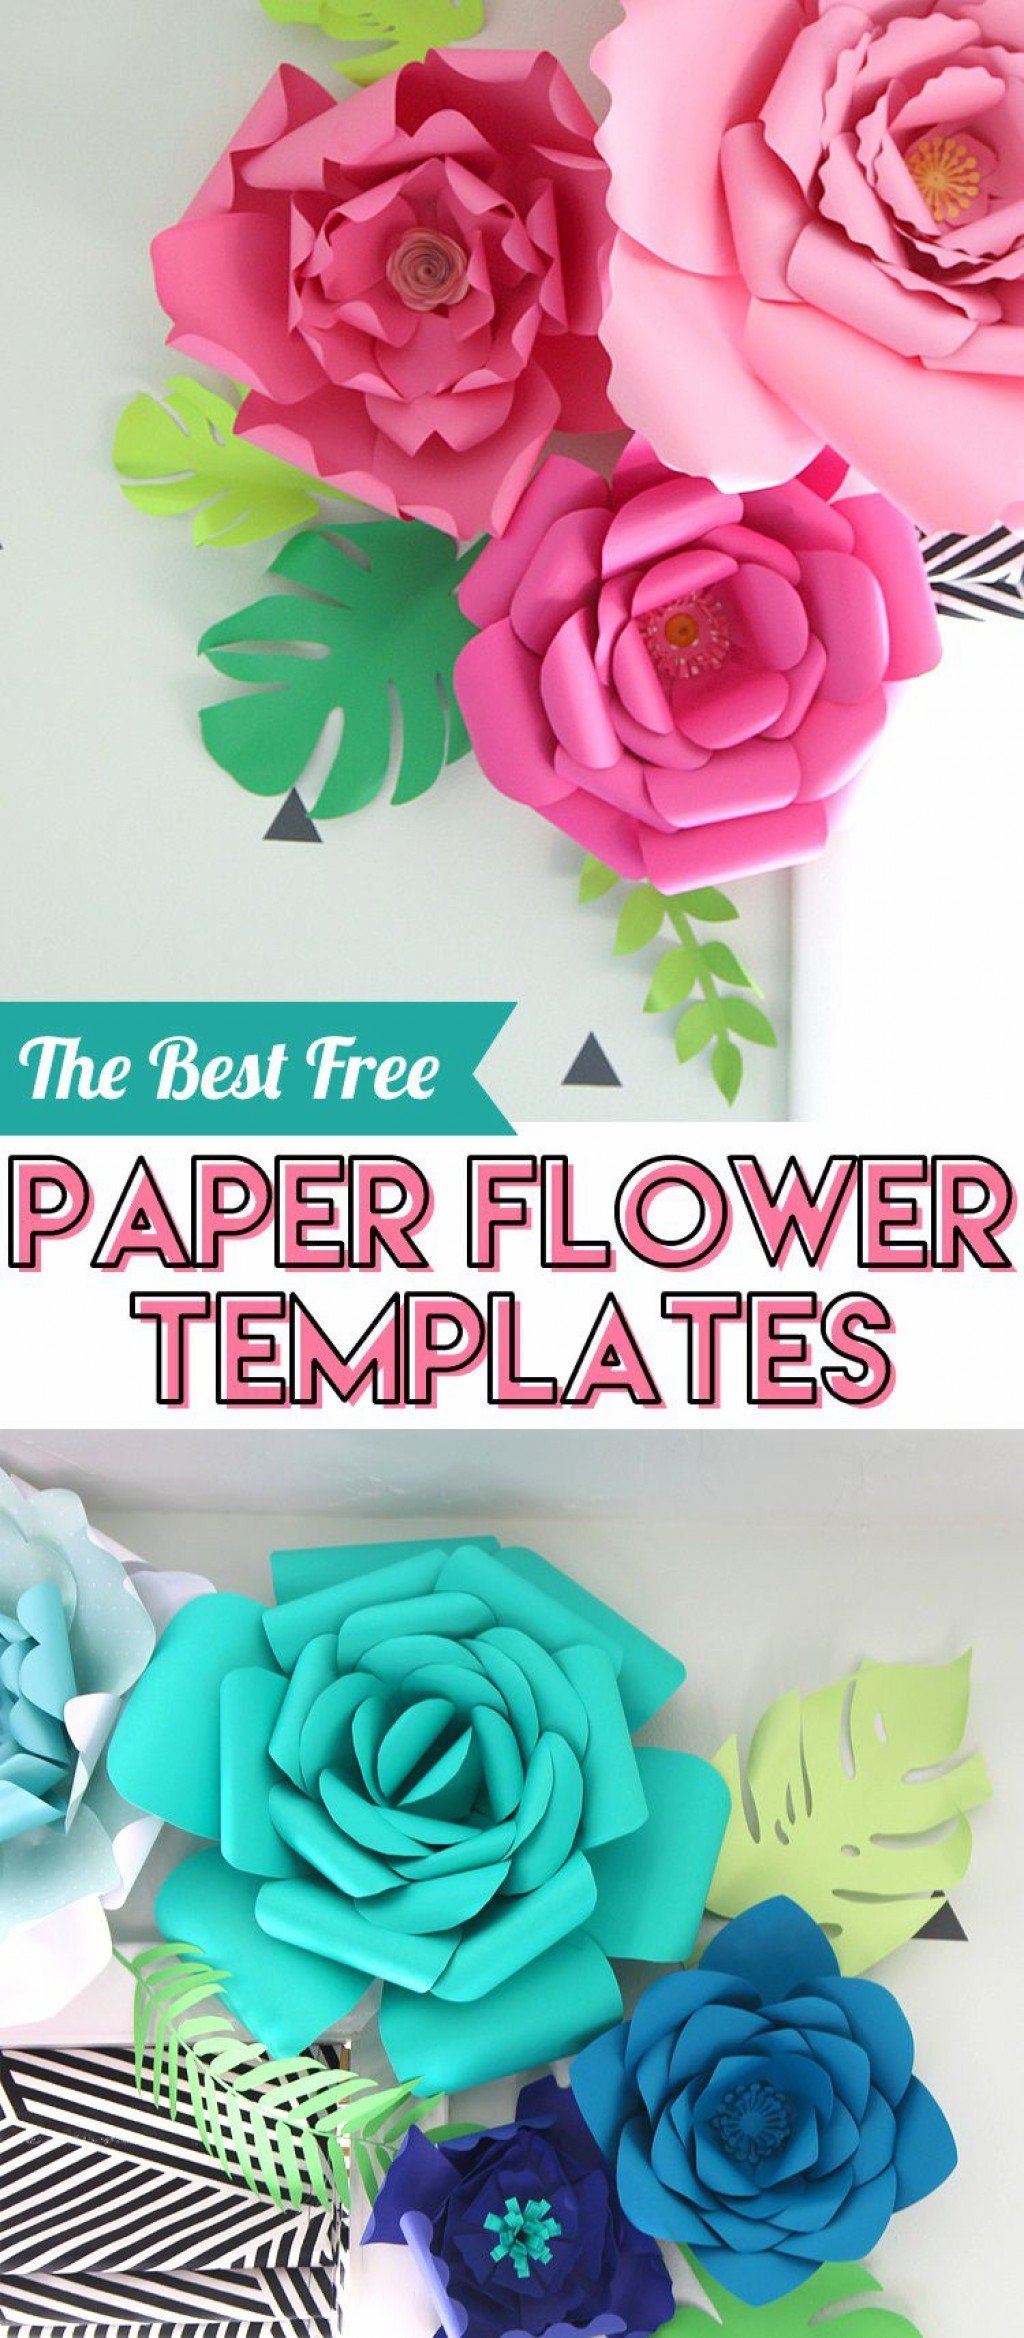 007 Impressive Giant Paper Flower Template Free Download Picture Large